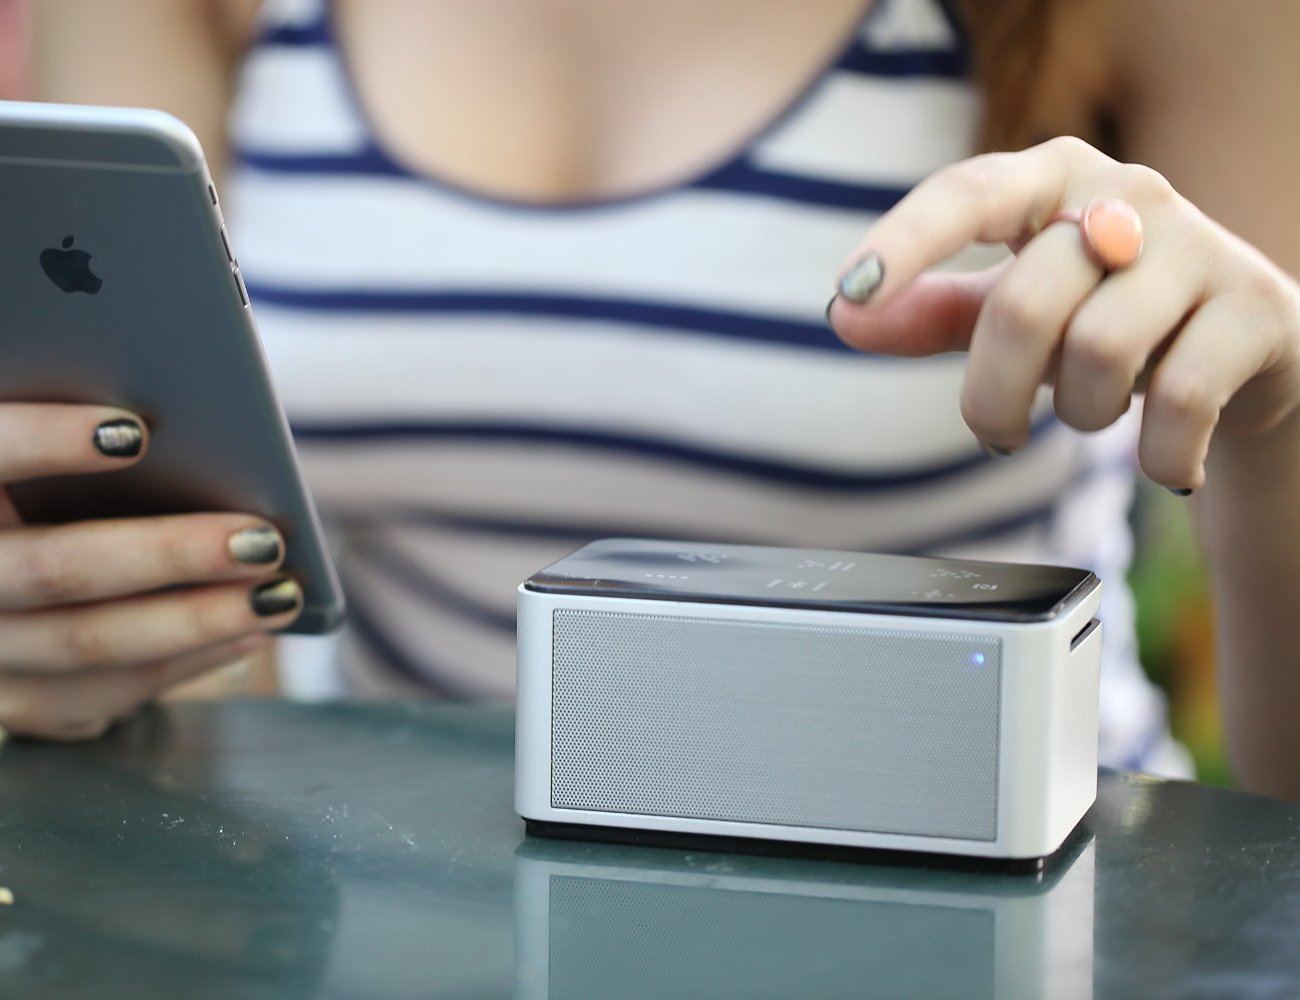 Paww+SoundBox+10+Compact+Bluetooth+Speaker